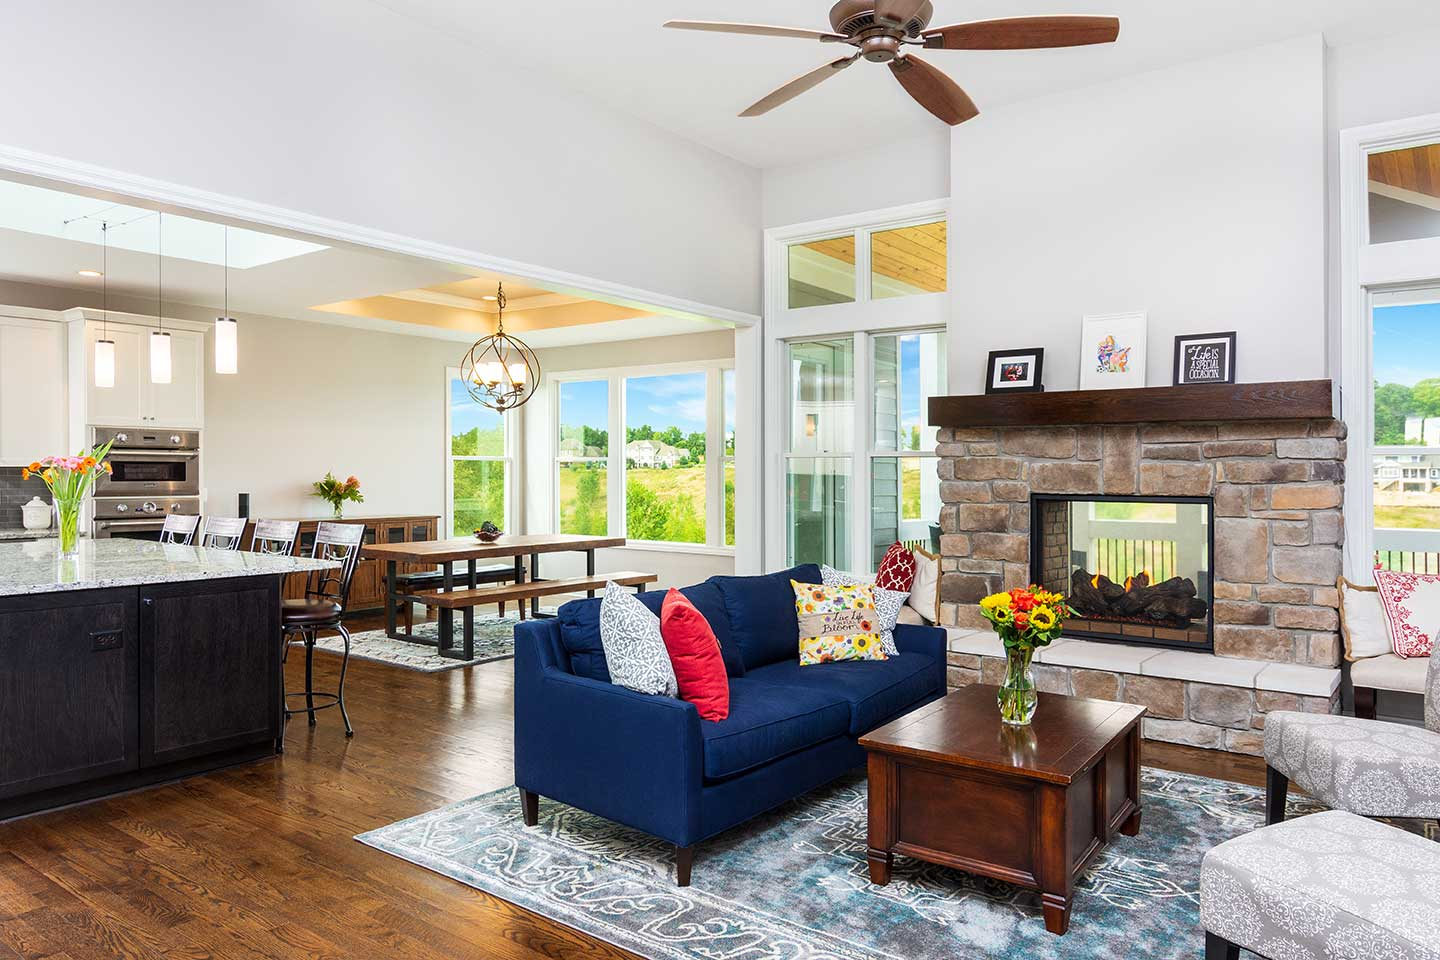 photo of furnished living room with fireplace sharing wall with indoor-outdoor sun room